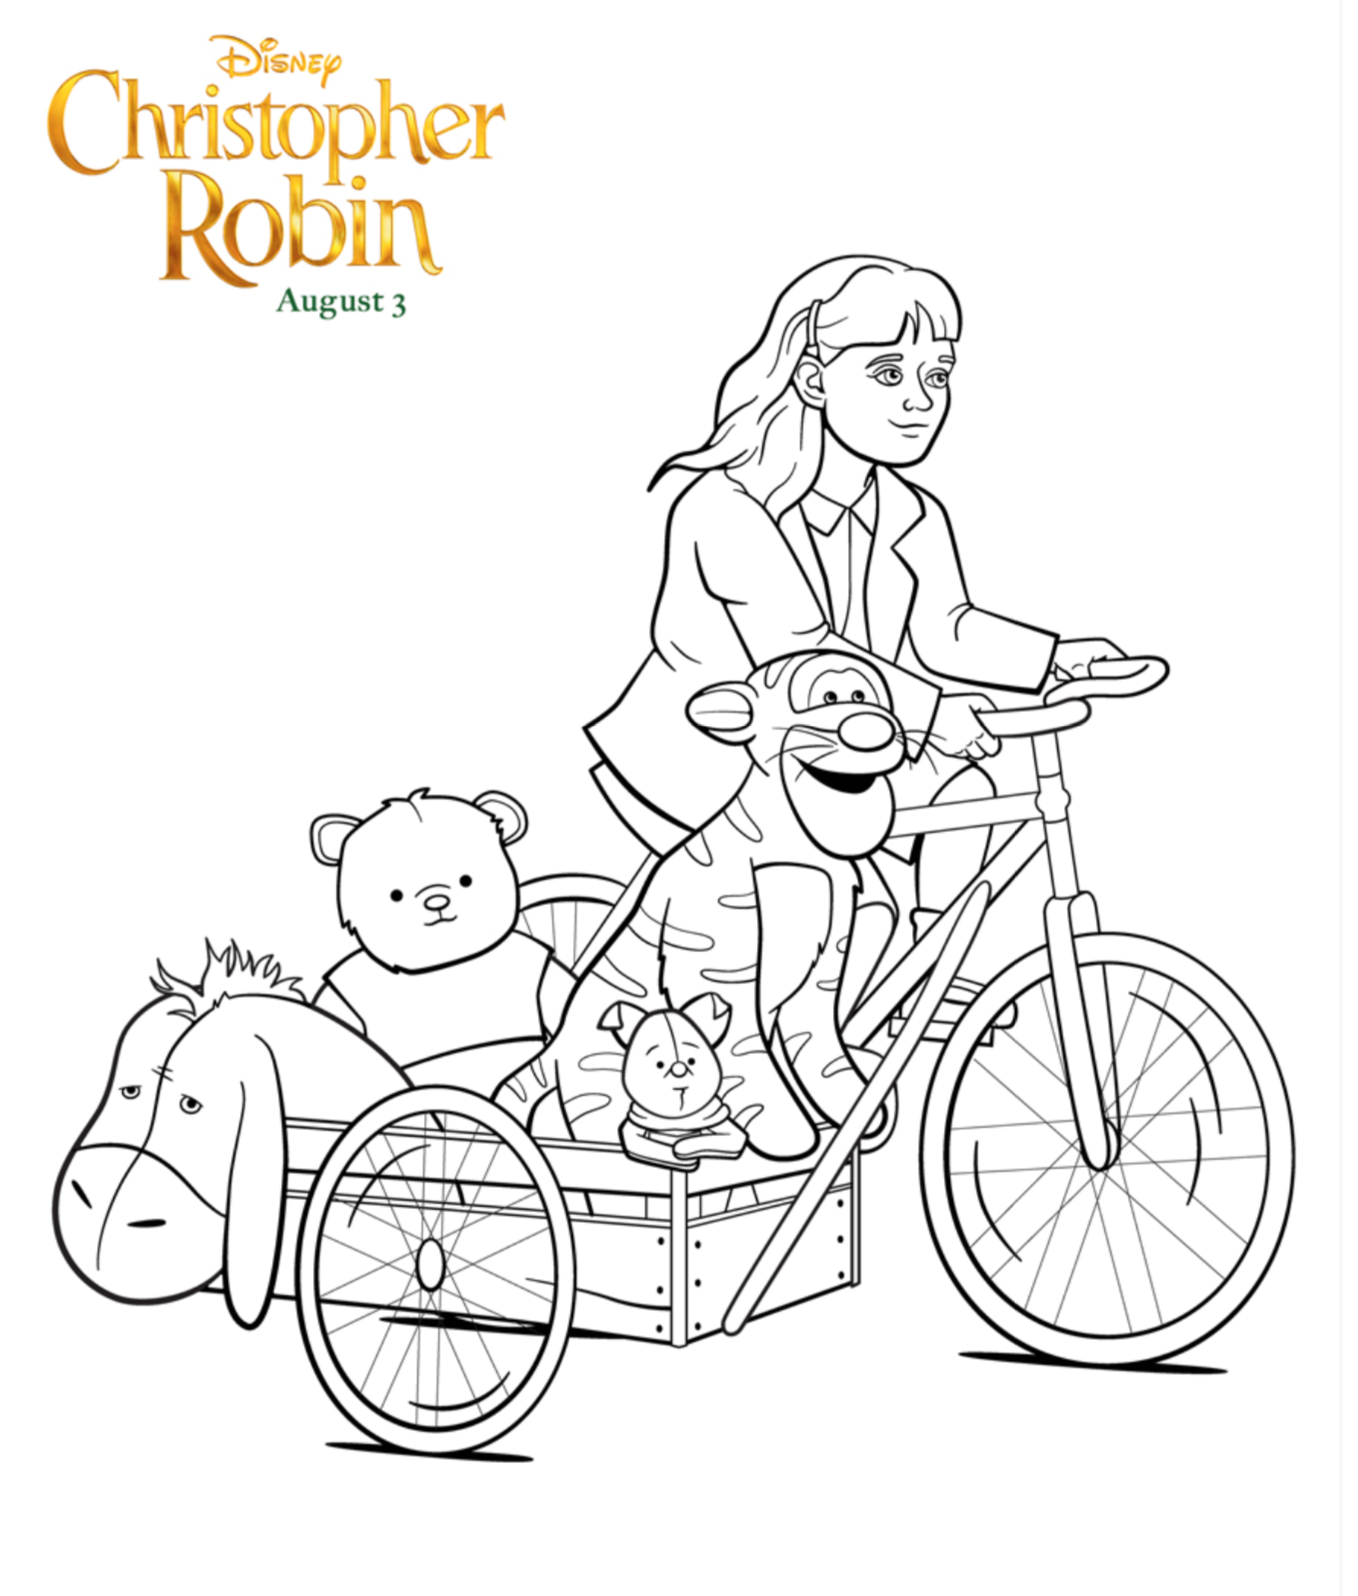 Free Printable Disney Christopher Robin Coloring Pages - Life ...